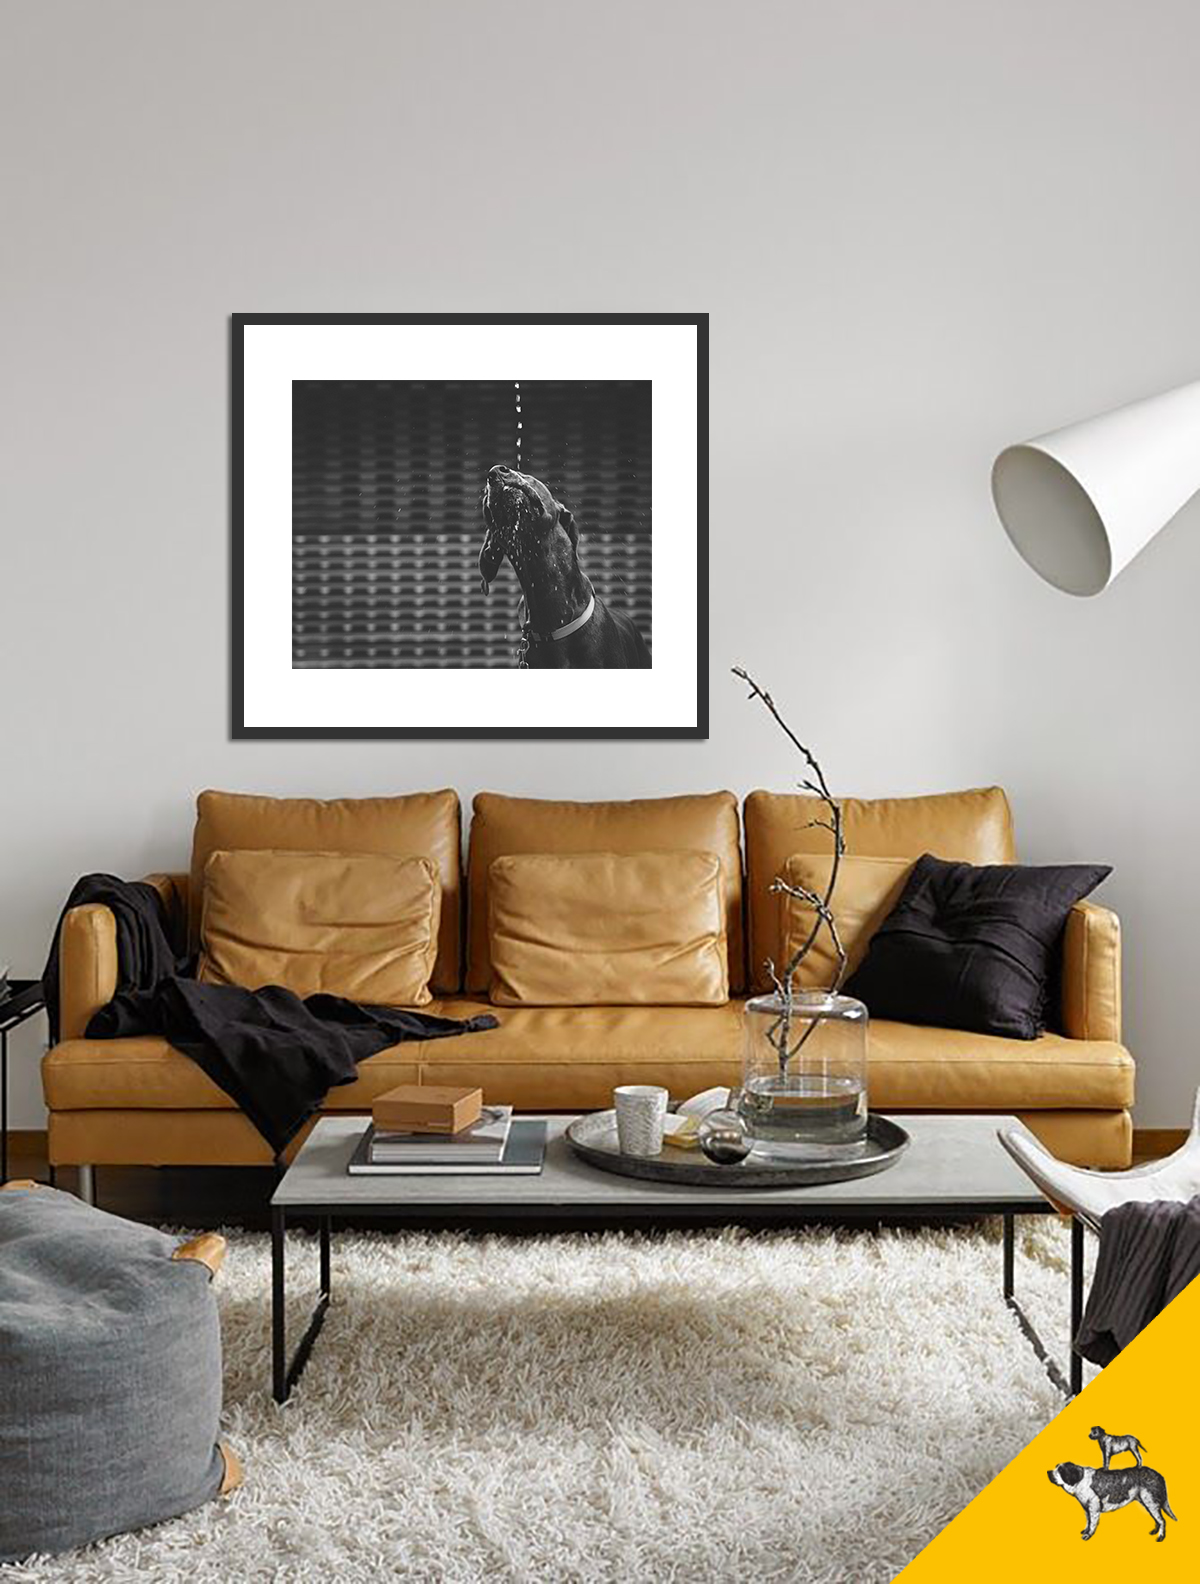 Single piece canvas/frame ($990+)